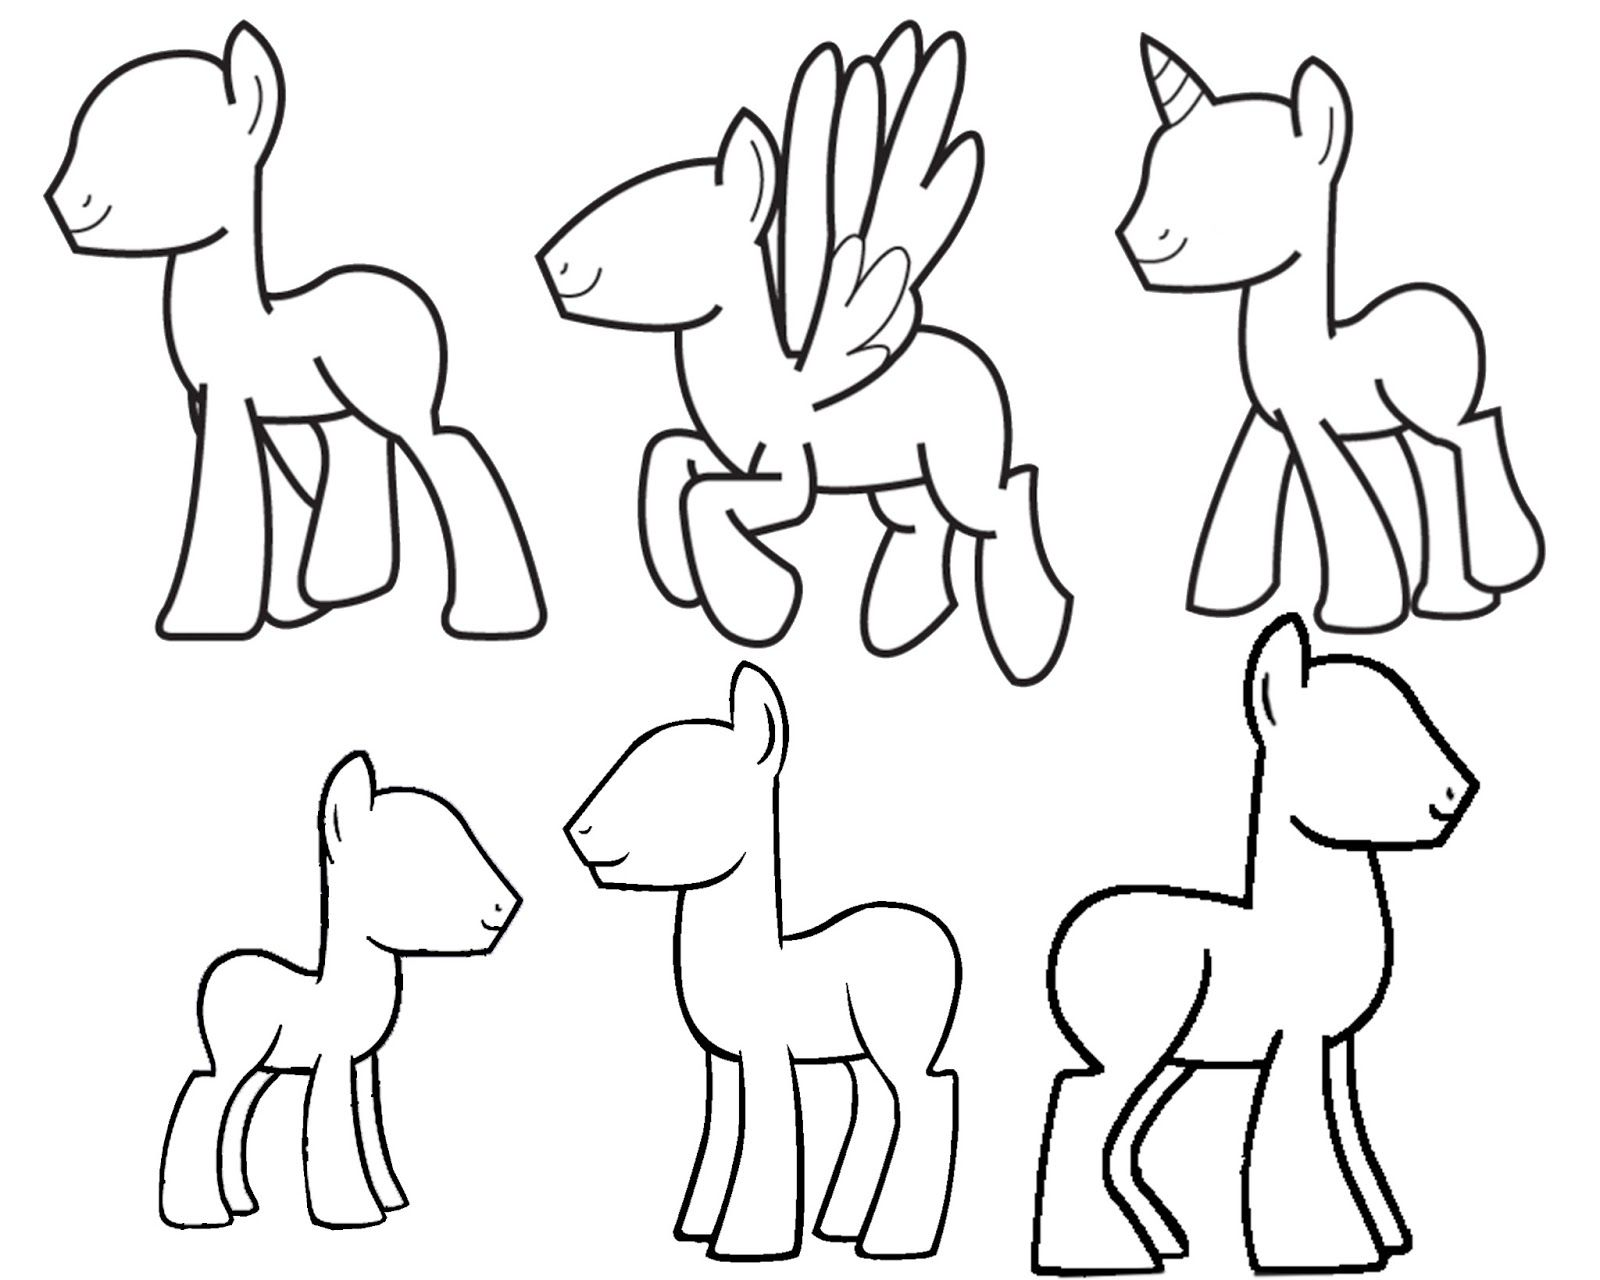 My little pony body drawing doodle craft design and draw your - Doodlecraft Design And Draw Your Own My Little Pony